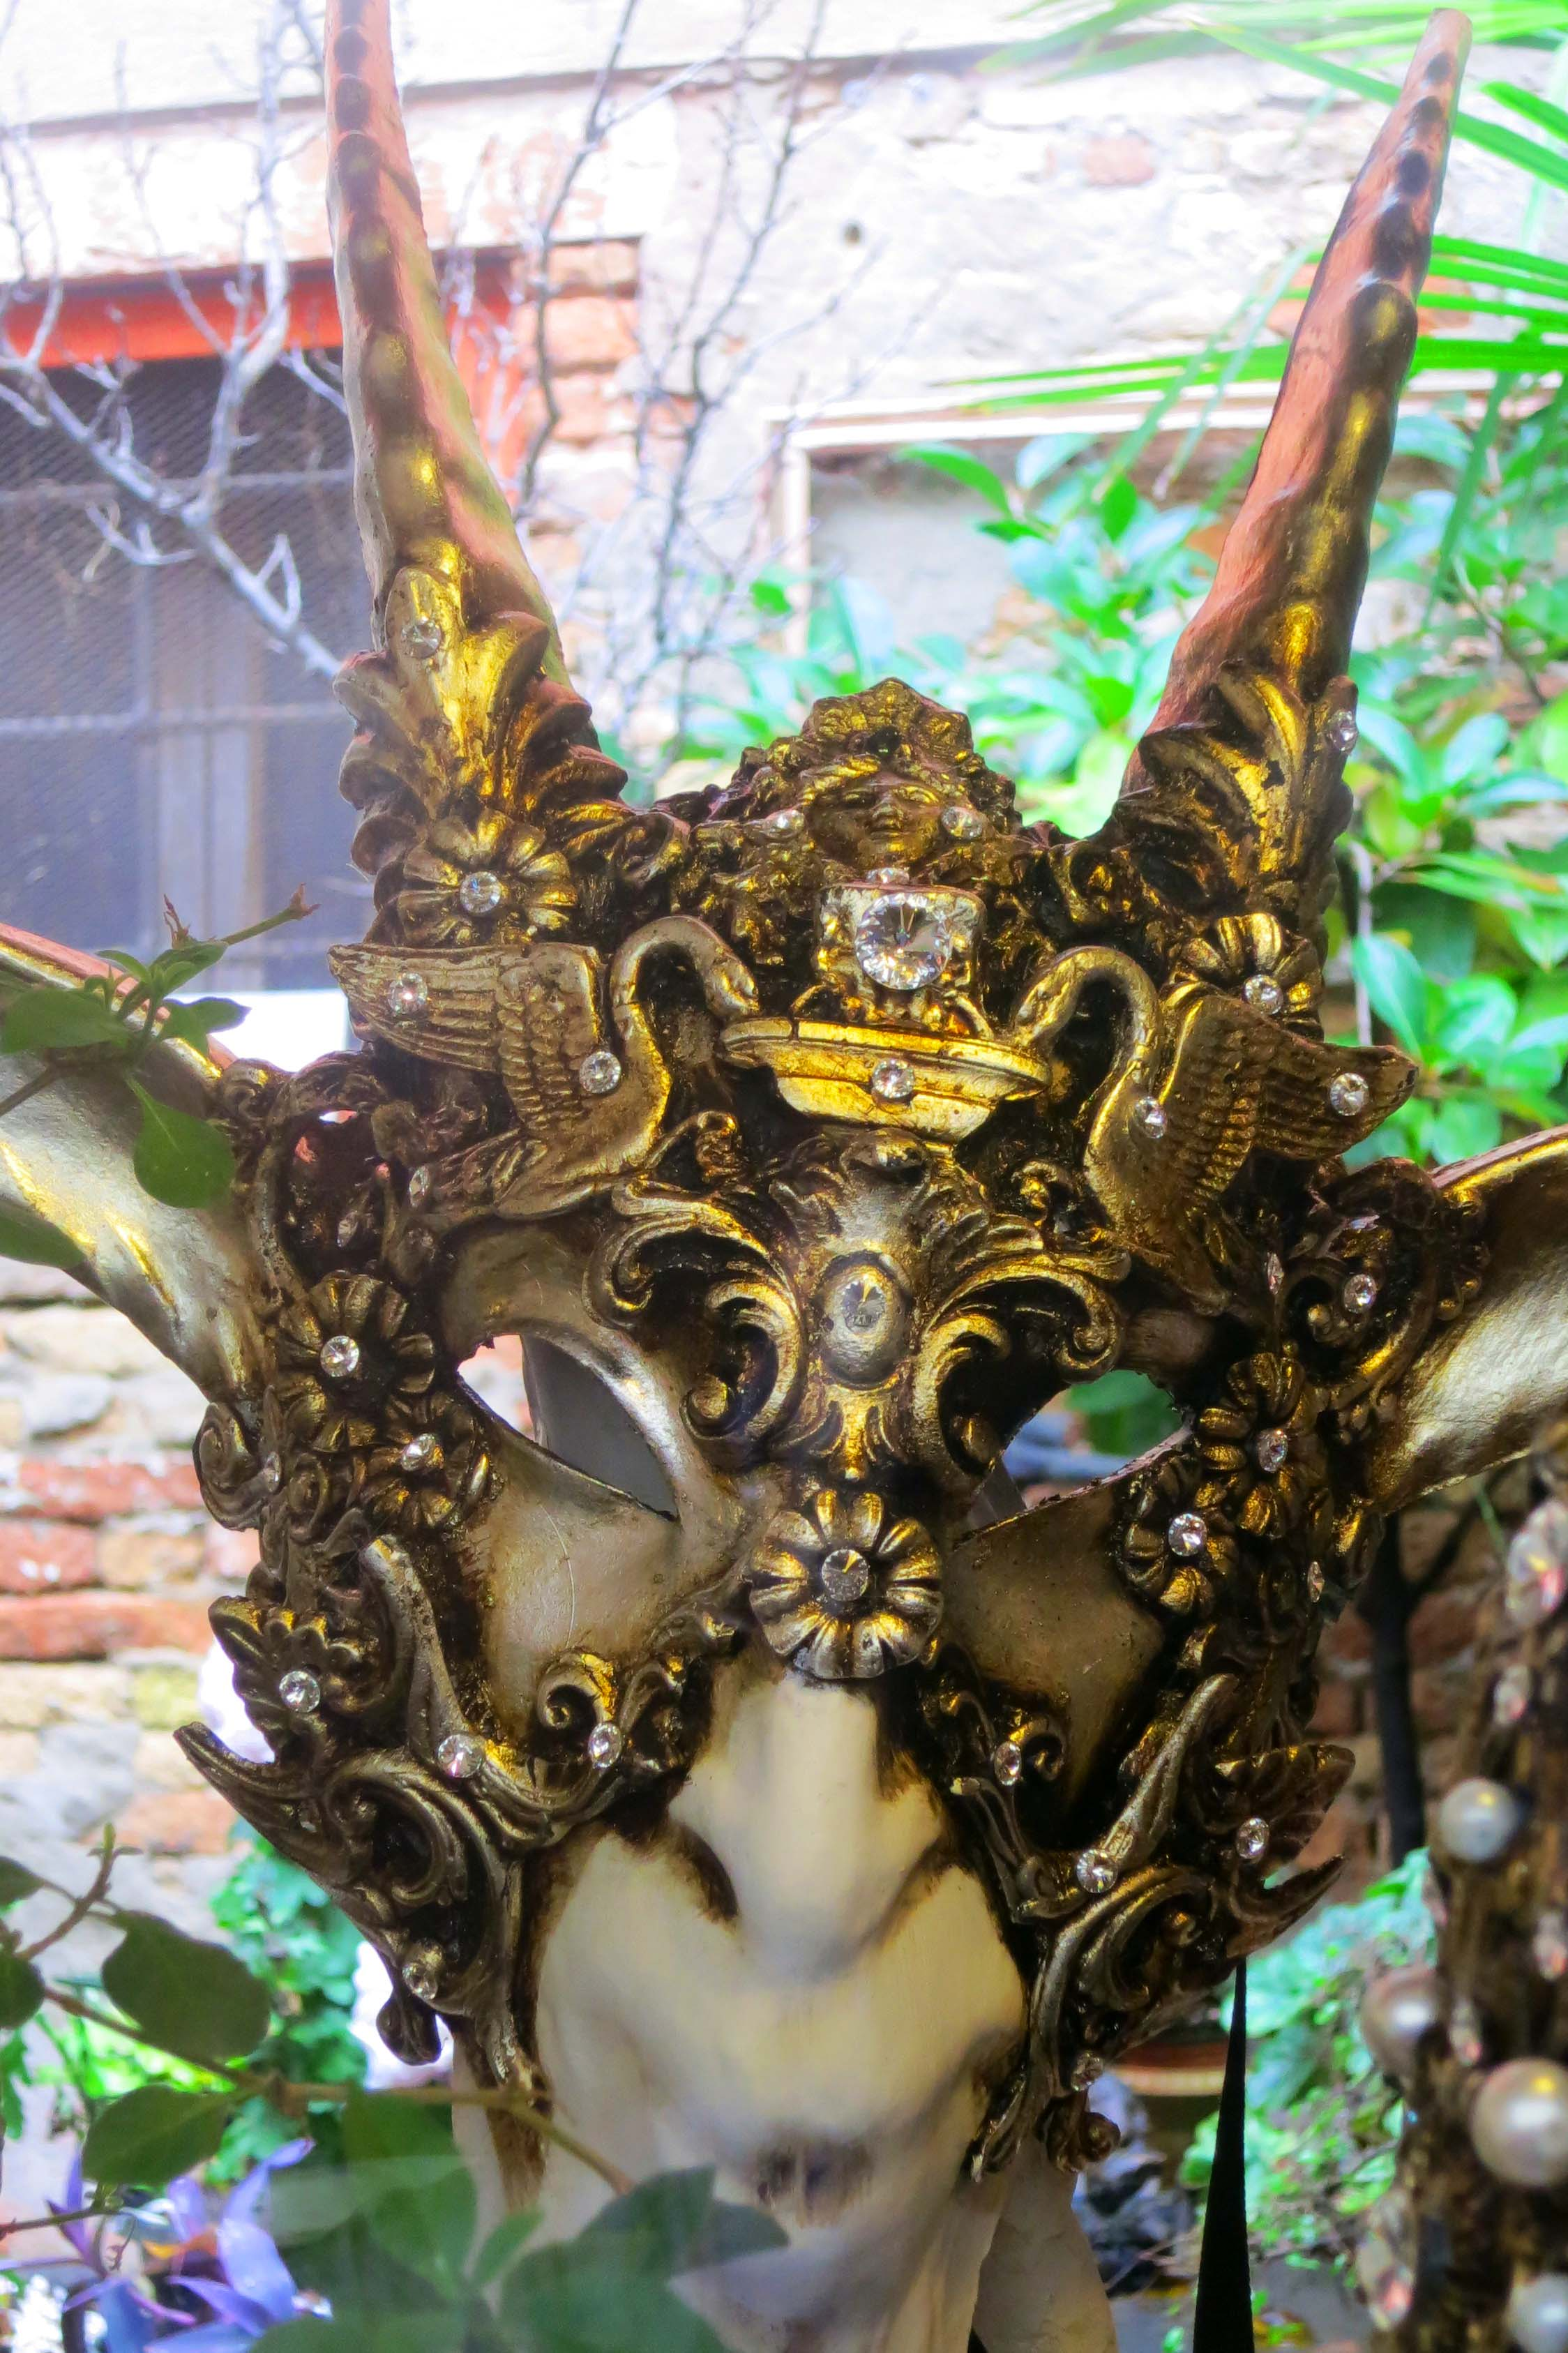 The faun-like character of this mask is obvious. Once again, it displays the incredible detail of many of the Venetian masks.